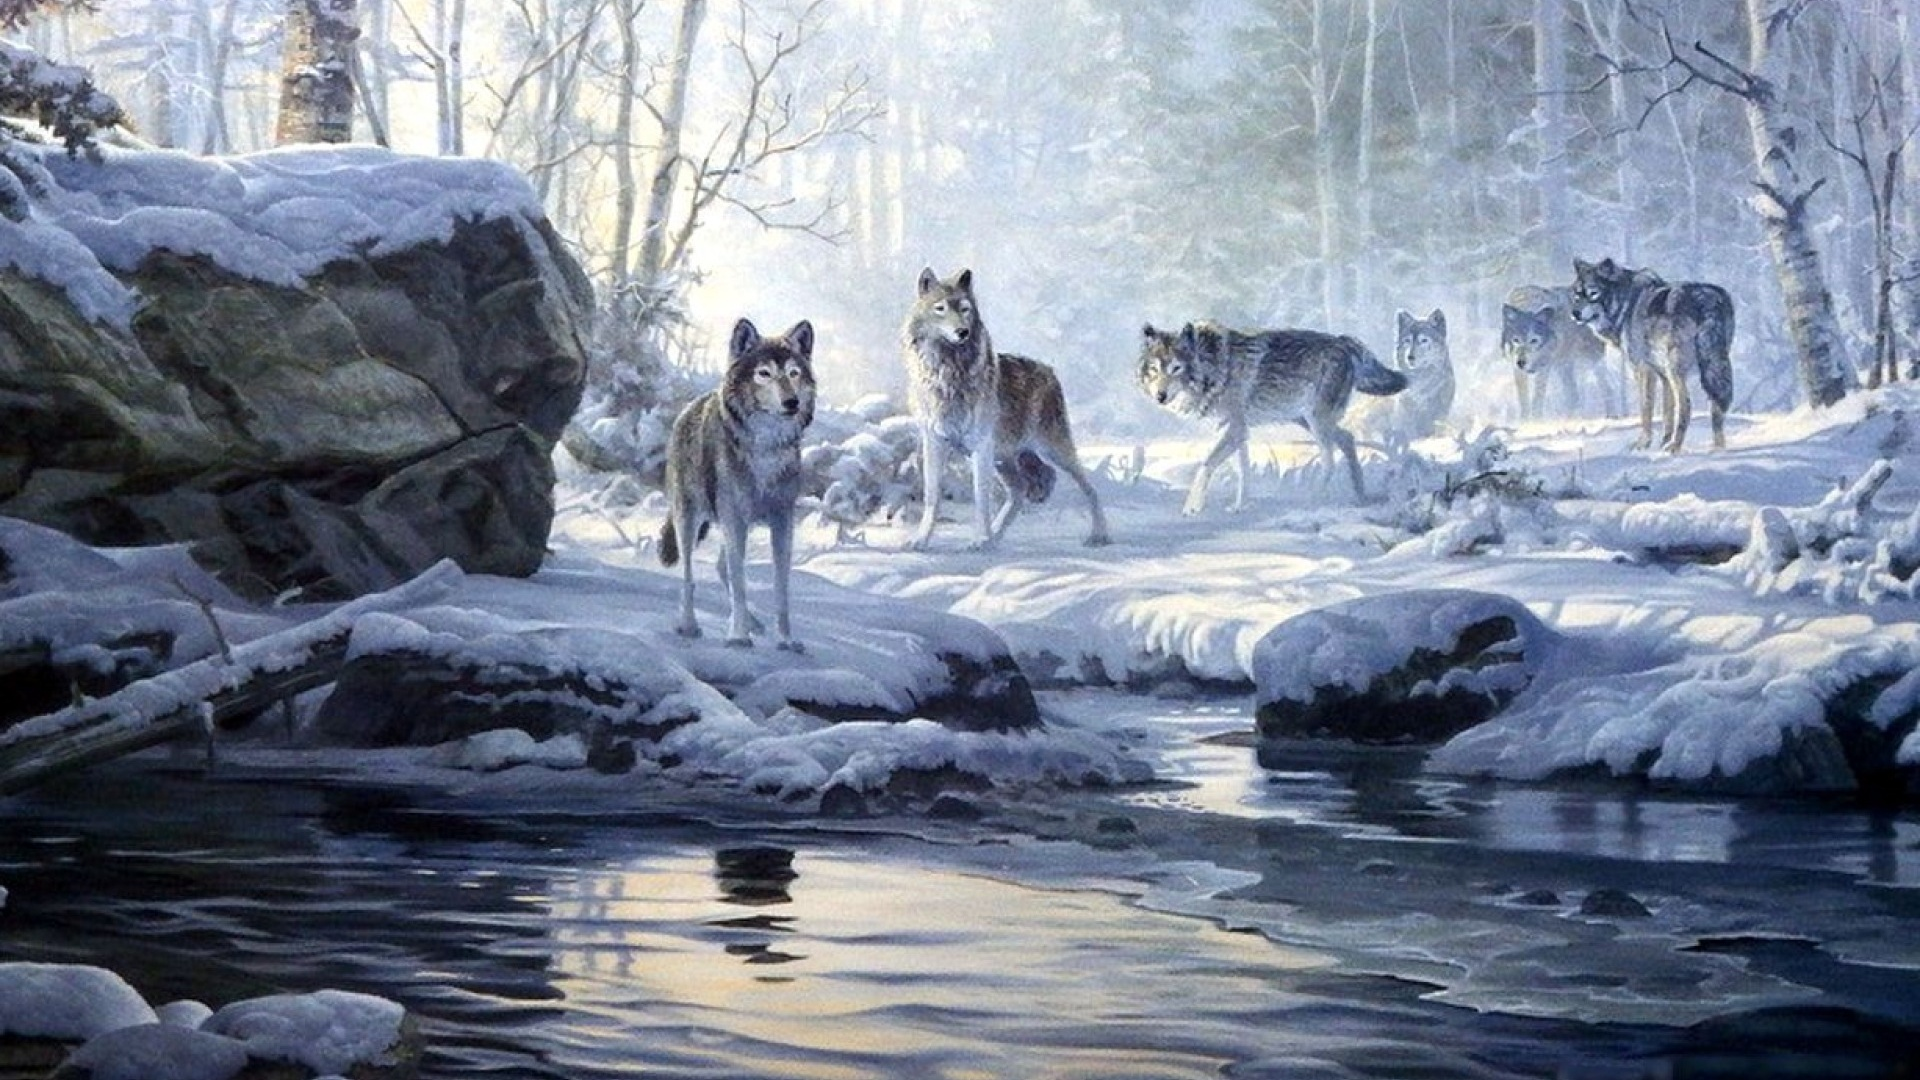 Good Wallpaper Mac Wolf - winter-forest-wolves-creek_wallpapers_50362_1920x1080  Snapshot_857926.jpg